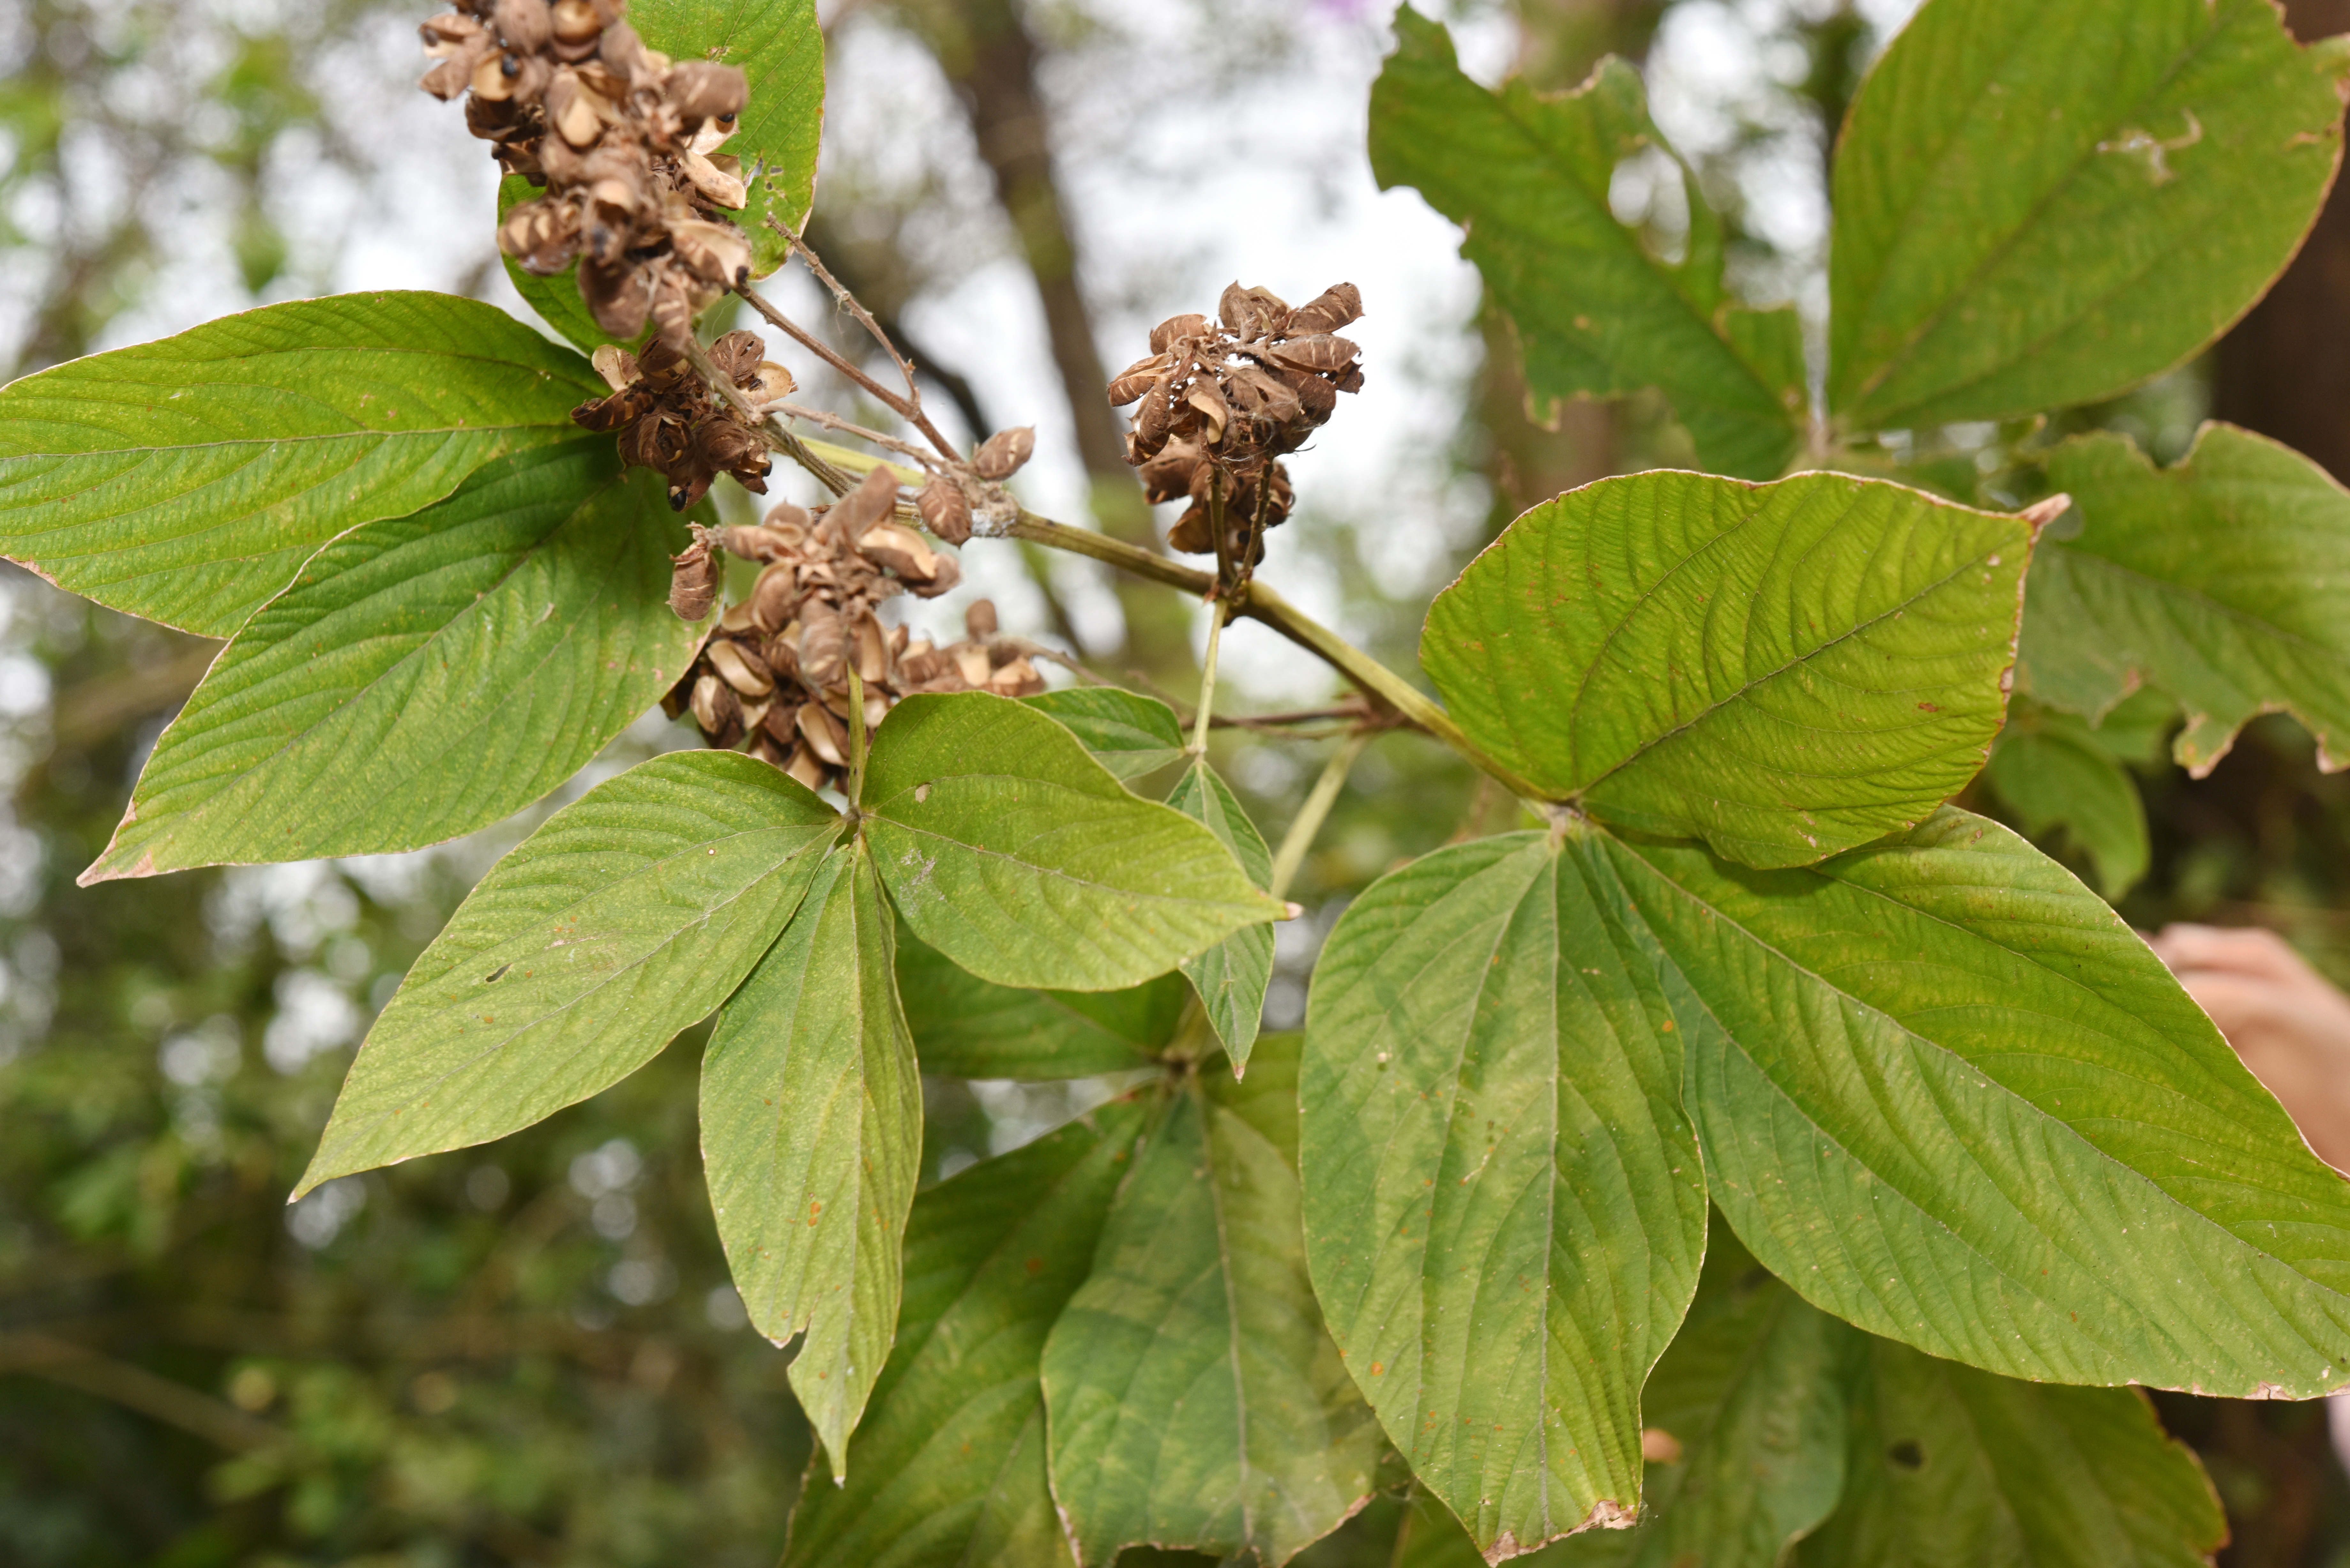 Flemingia macrophylla Images - Useful Tropical Plants